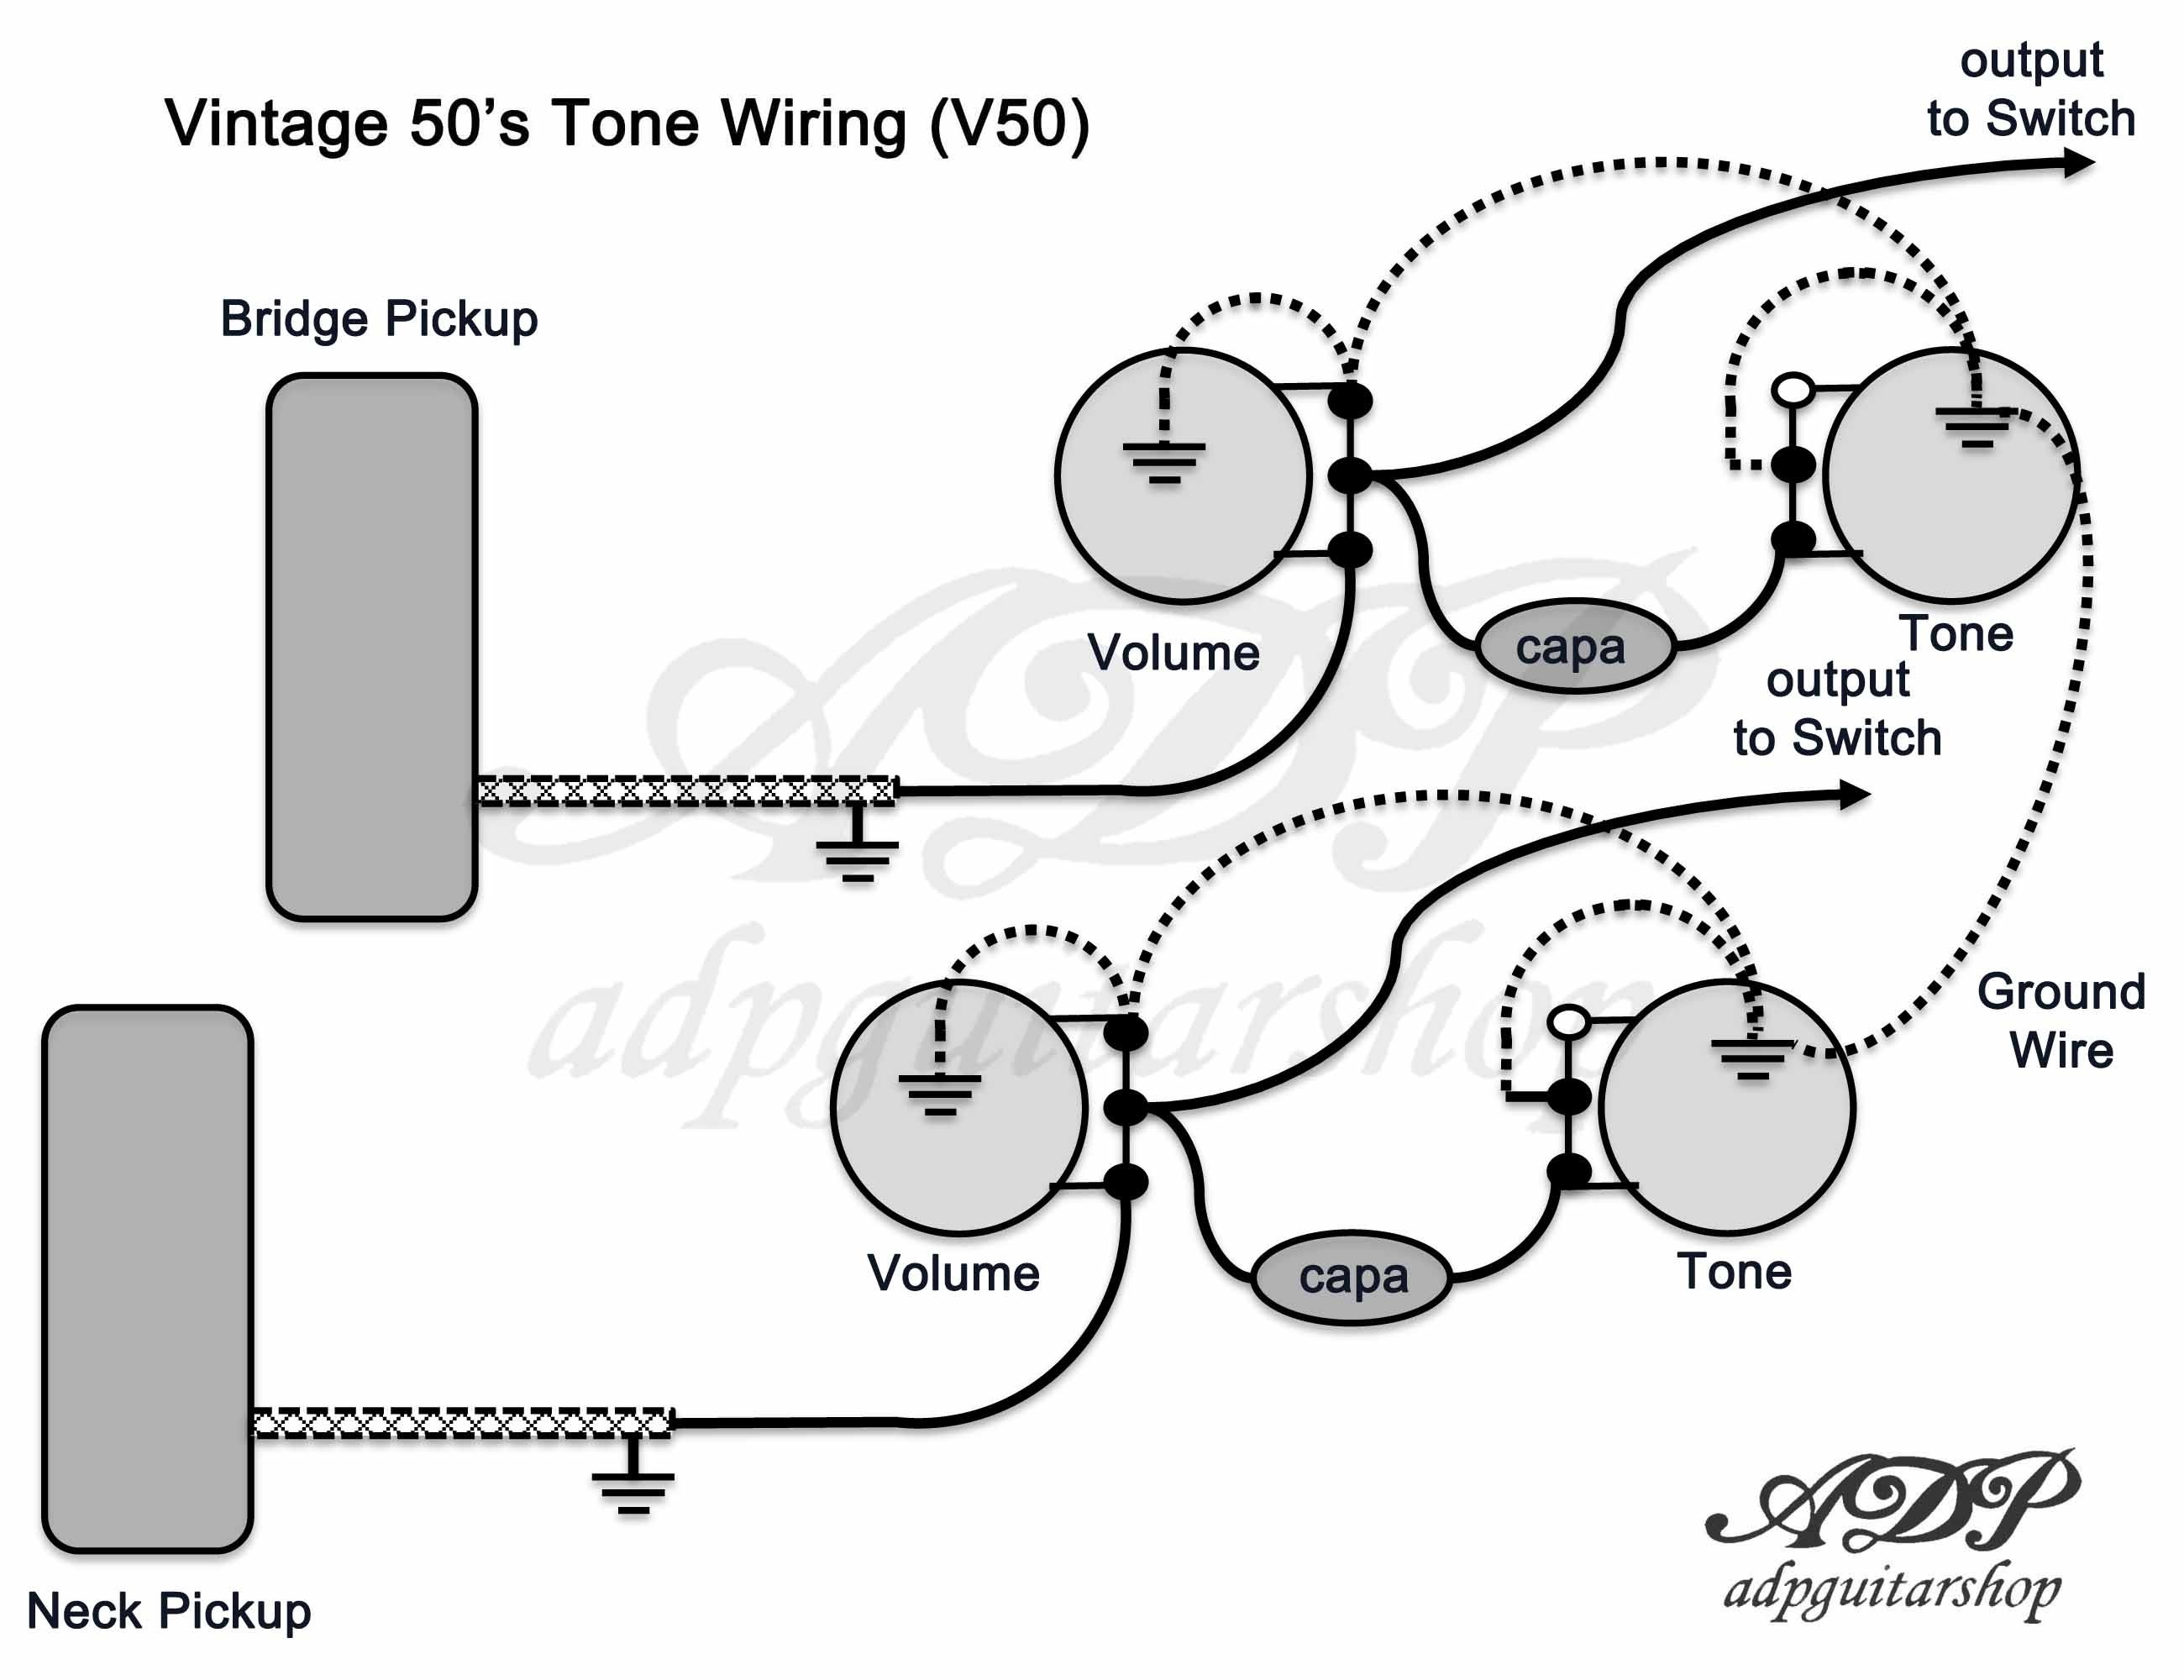 Re Wiring Diagram For Gibson Explorer Please Picture - Imaia.co.uk \u2022